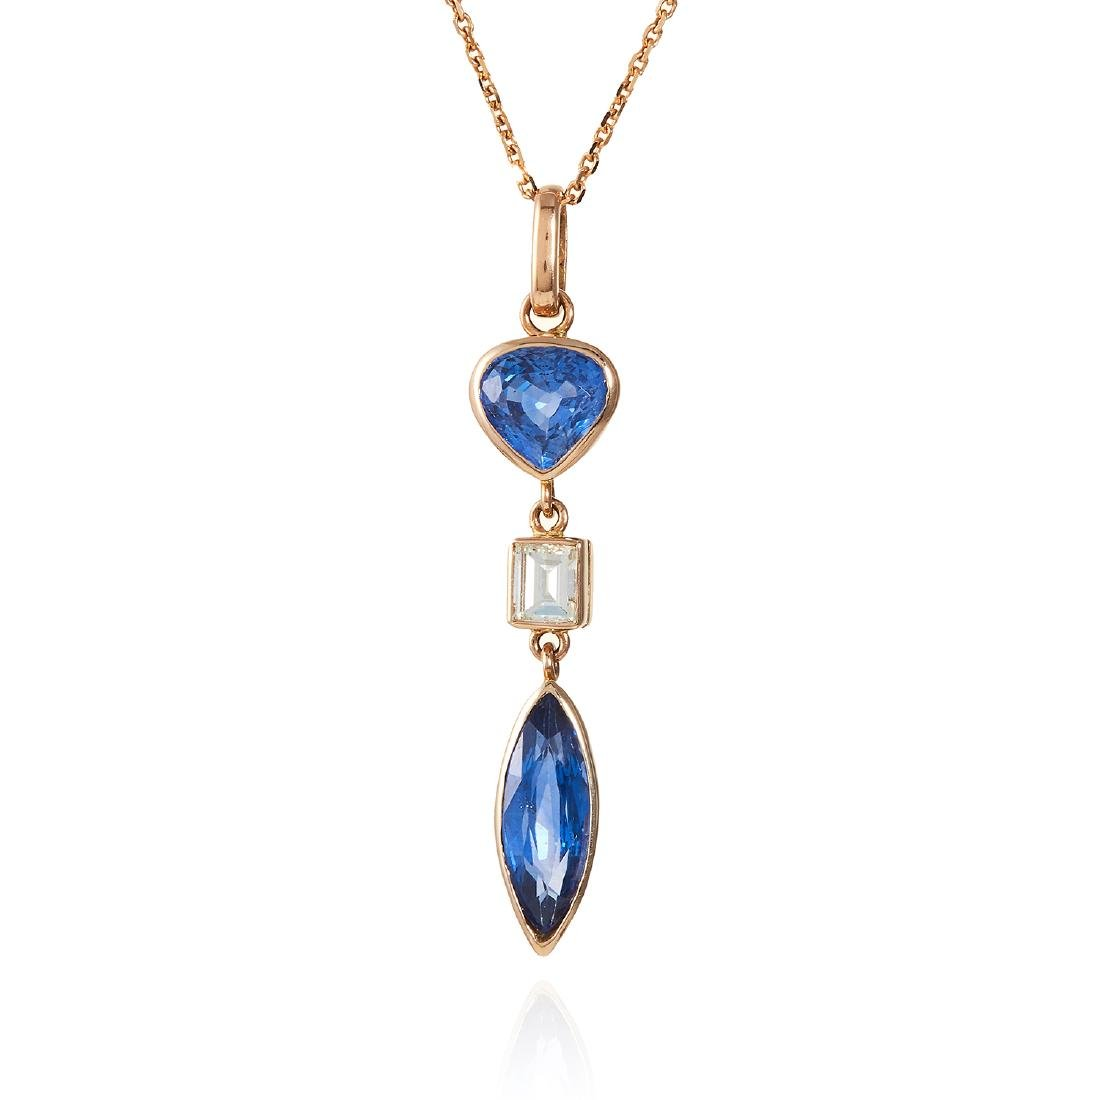 A SAPPHIRE AND DIAMOND PENDANT in 18ct gold, comprising